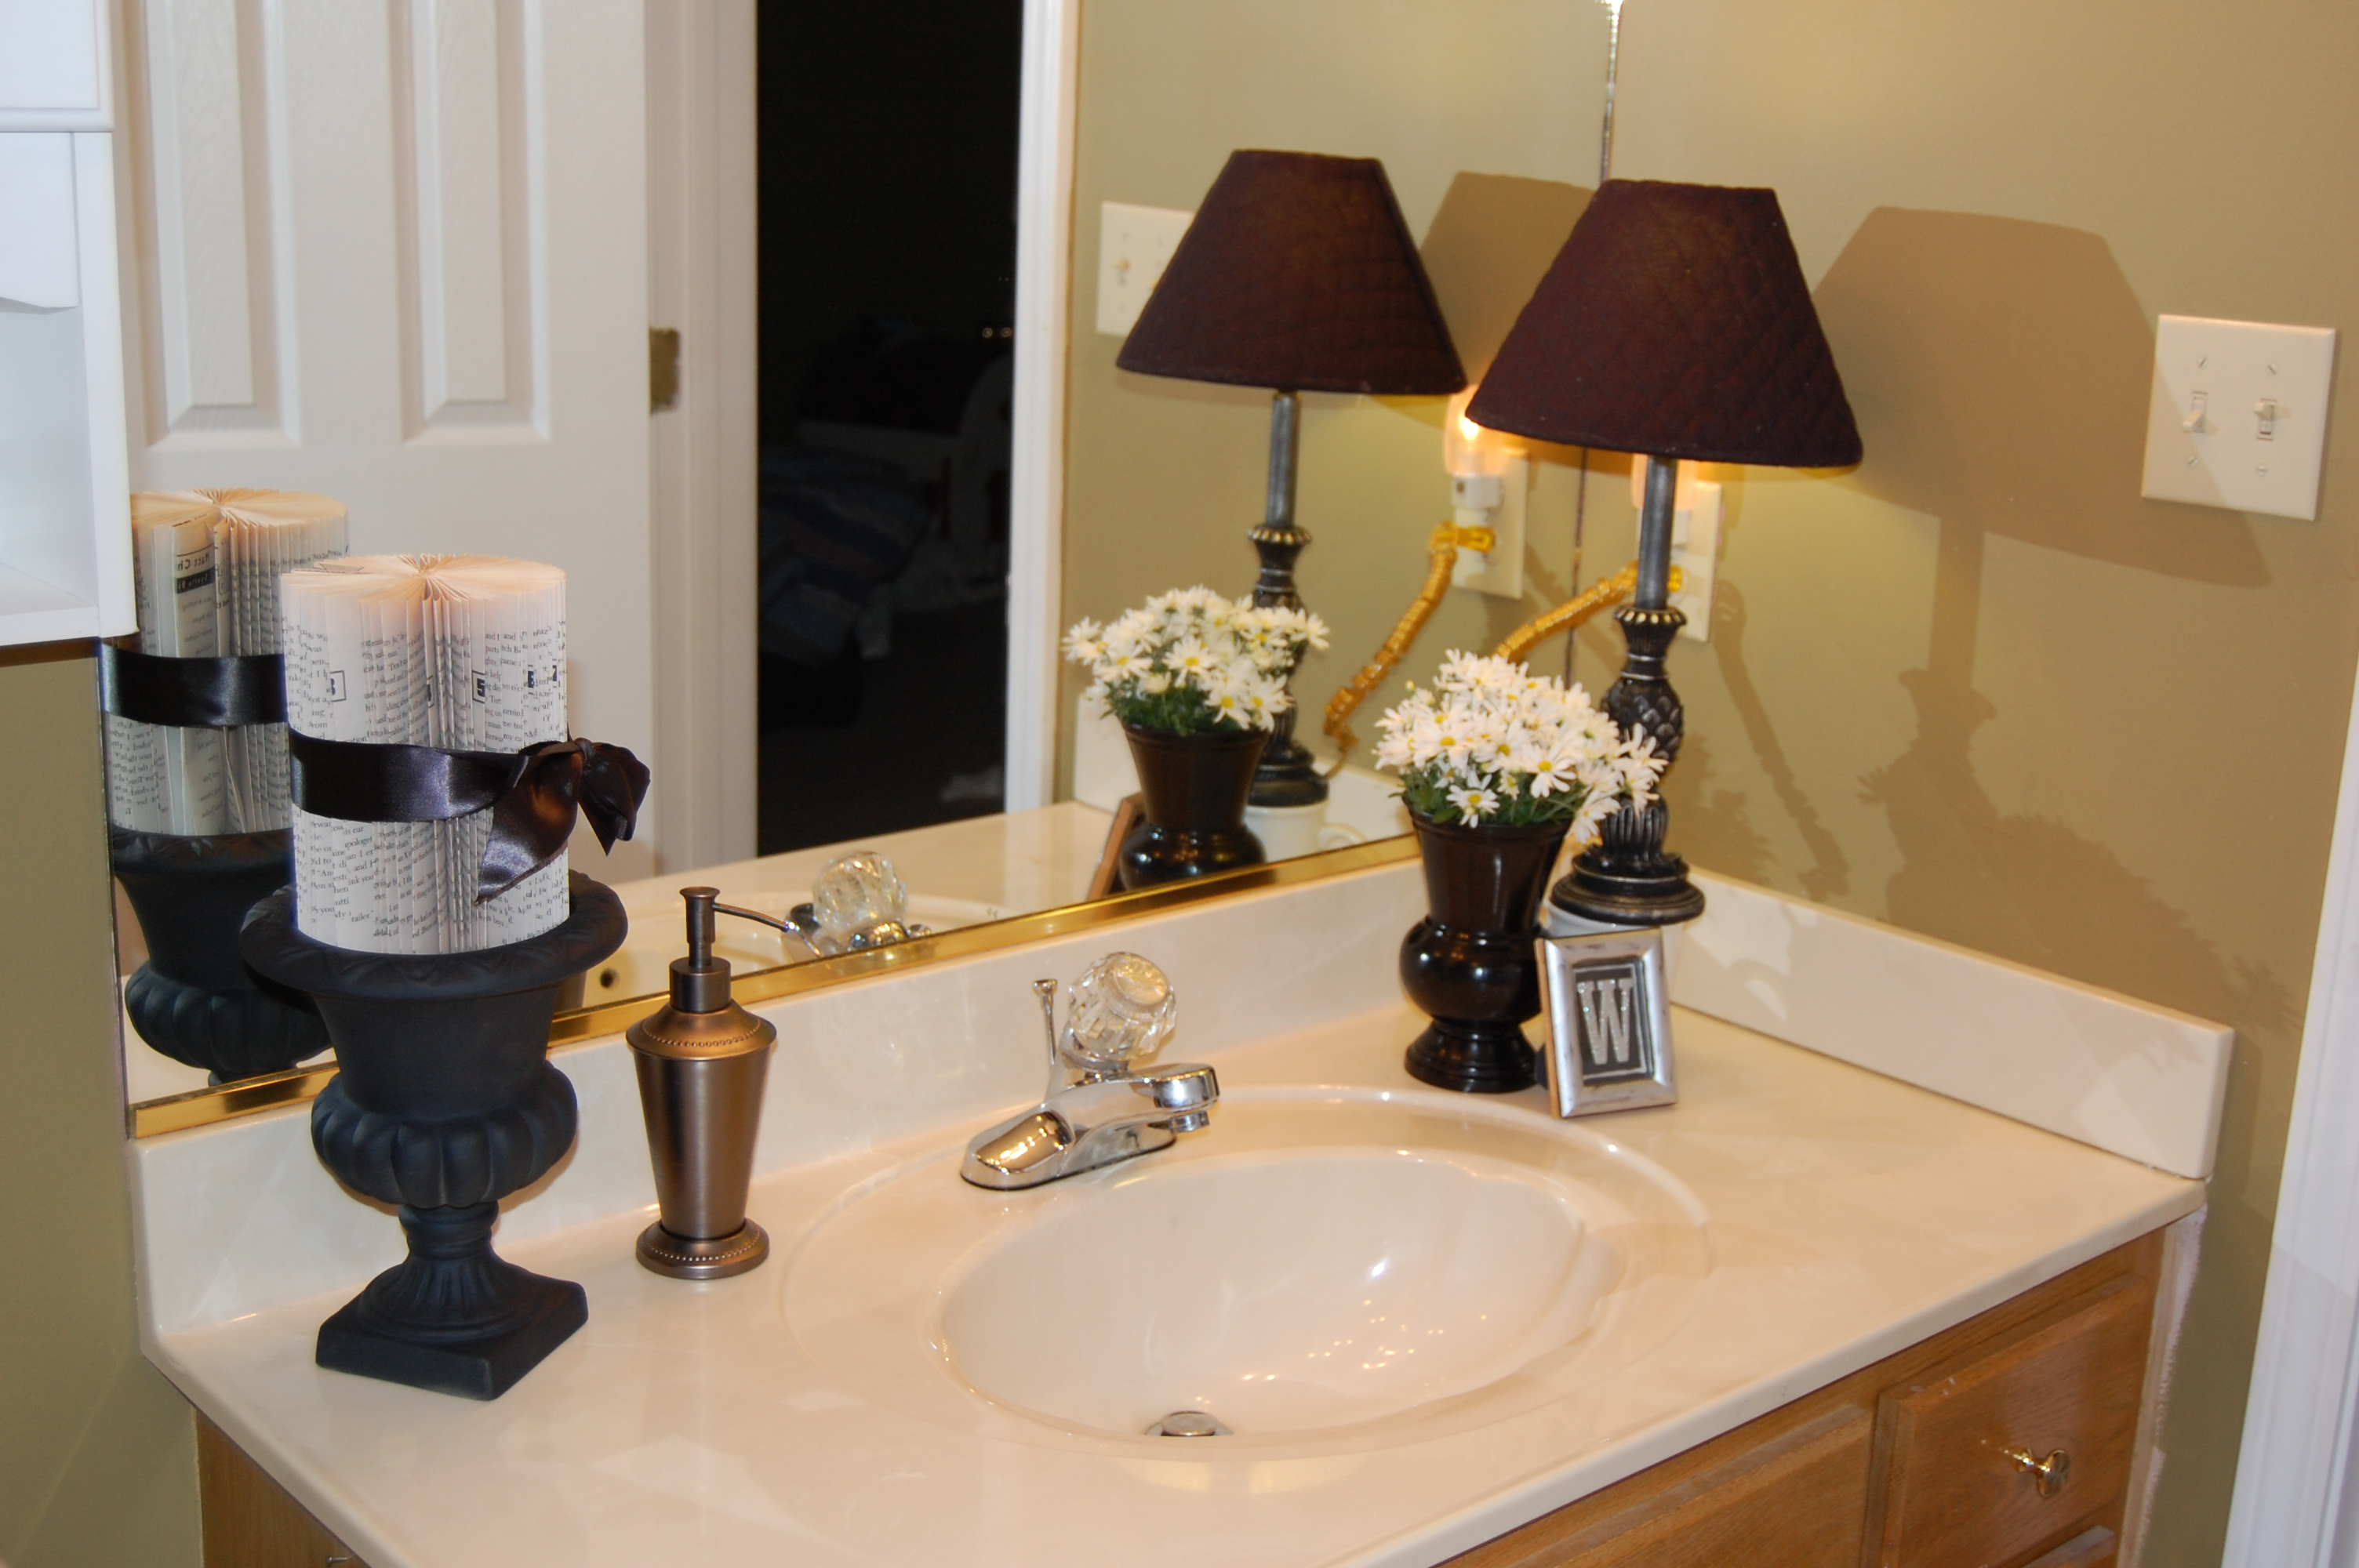 Freestyle bathroom makeover let 39 s get cooking for Bathroom countertop accessories